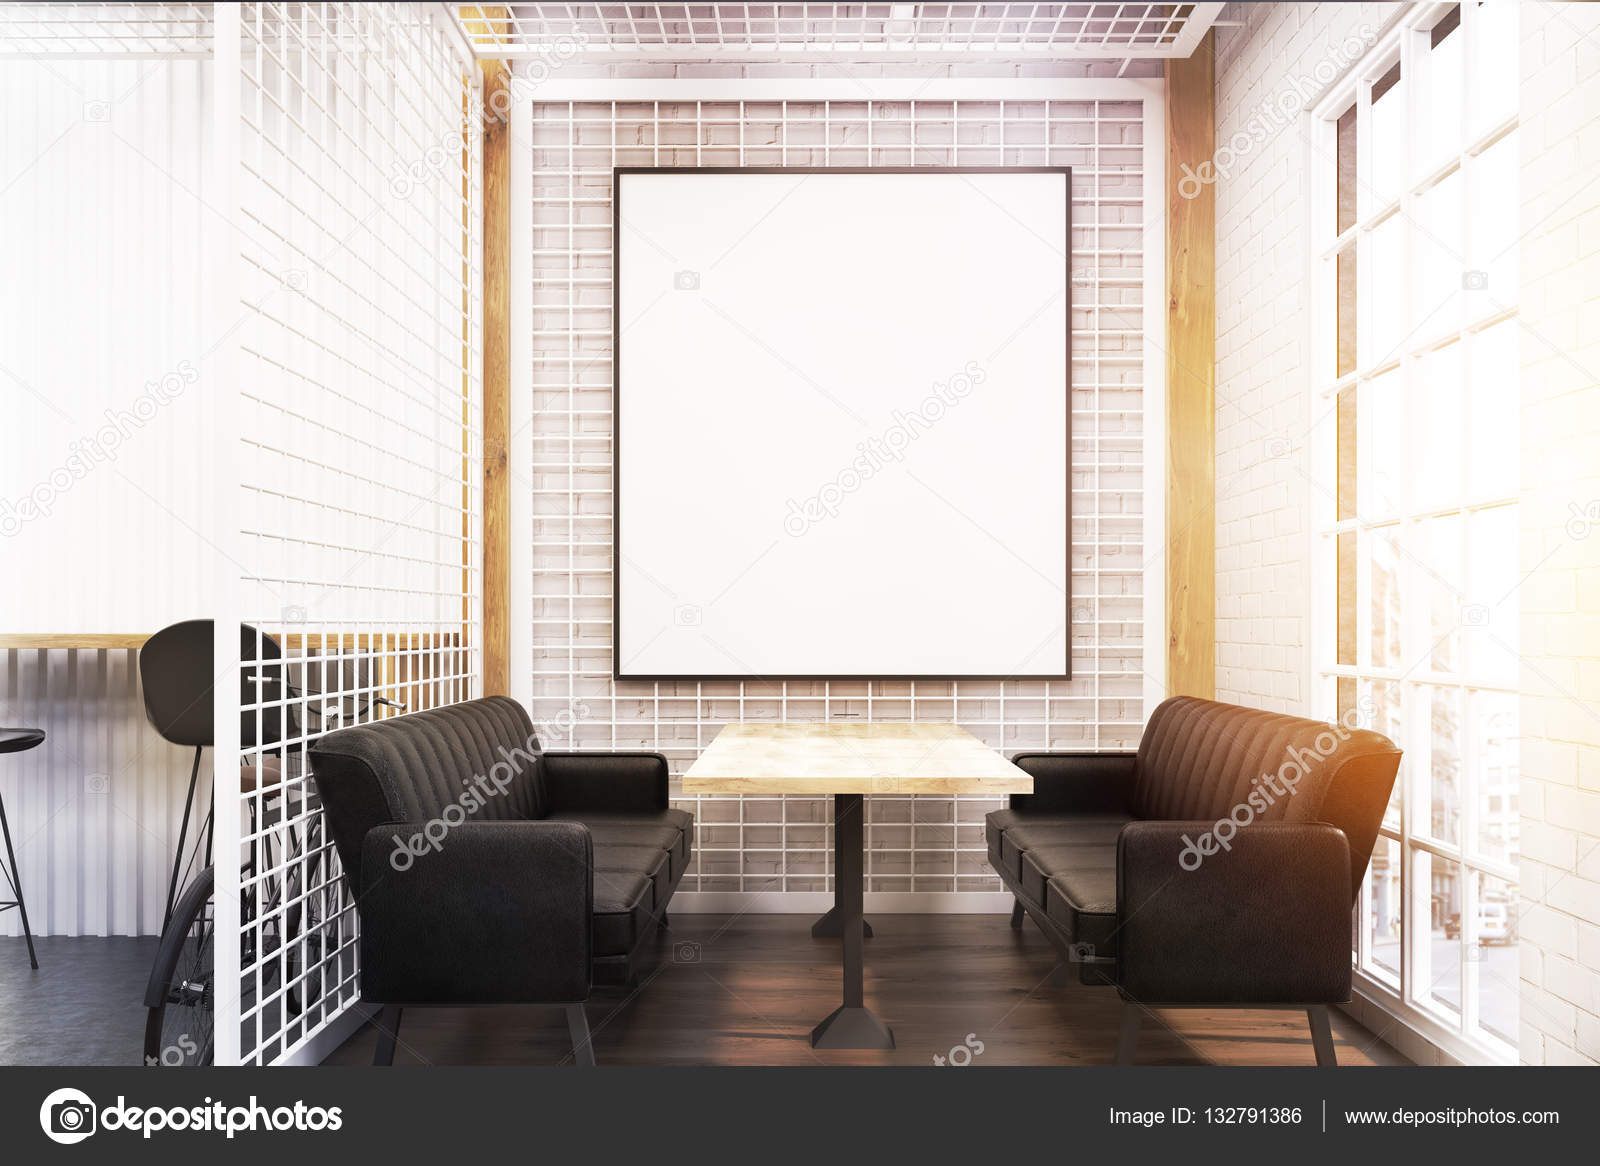 cafe interior with two soft sofas a wooden table and a large framed poster hanging on a wall with grate 3d rendering mock up - Large Cafe Interior